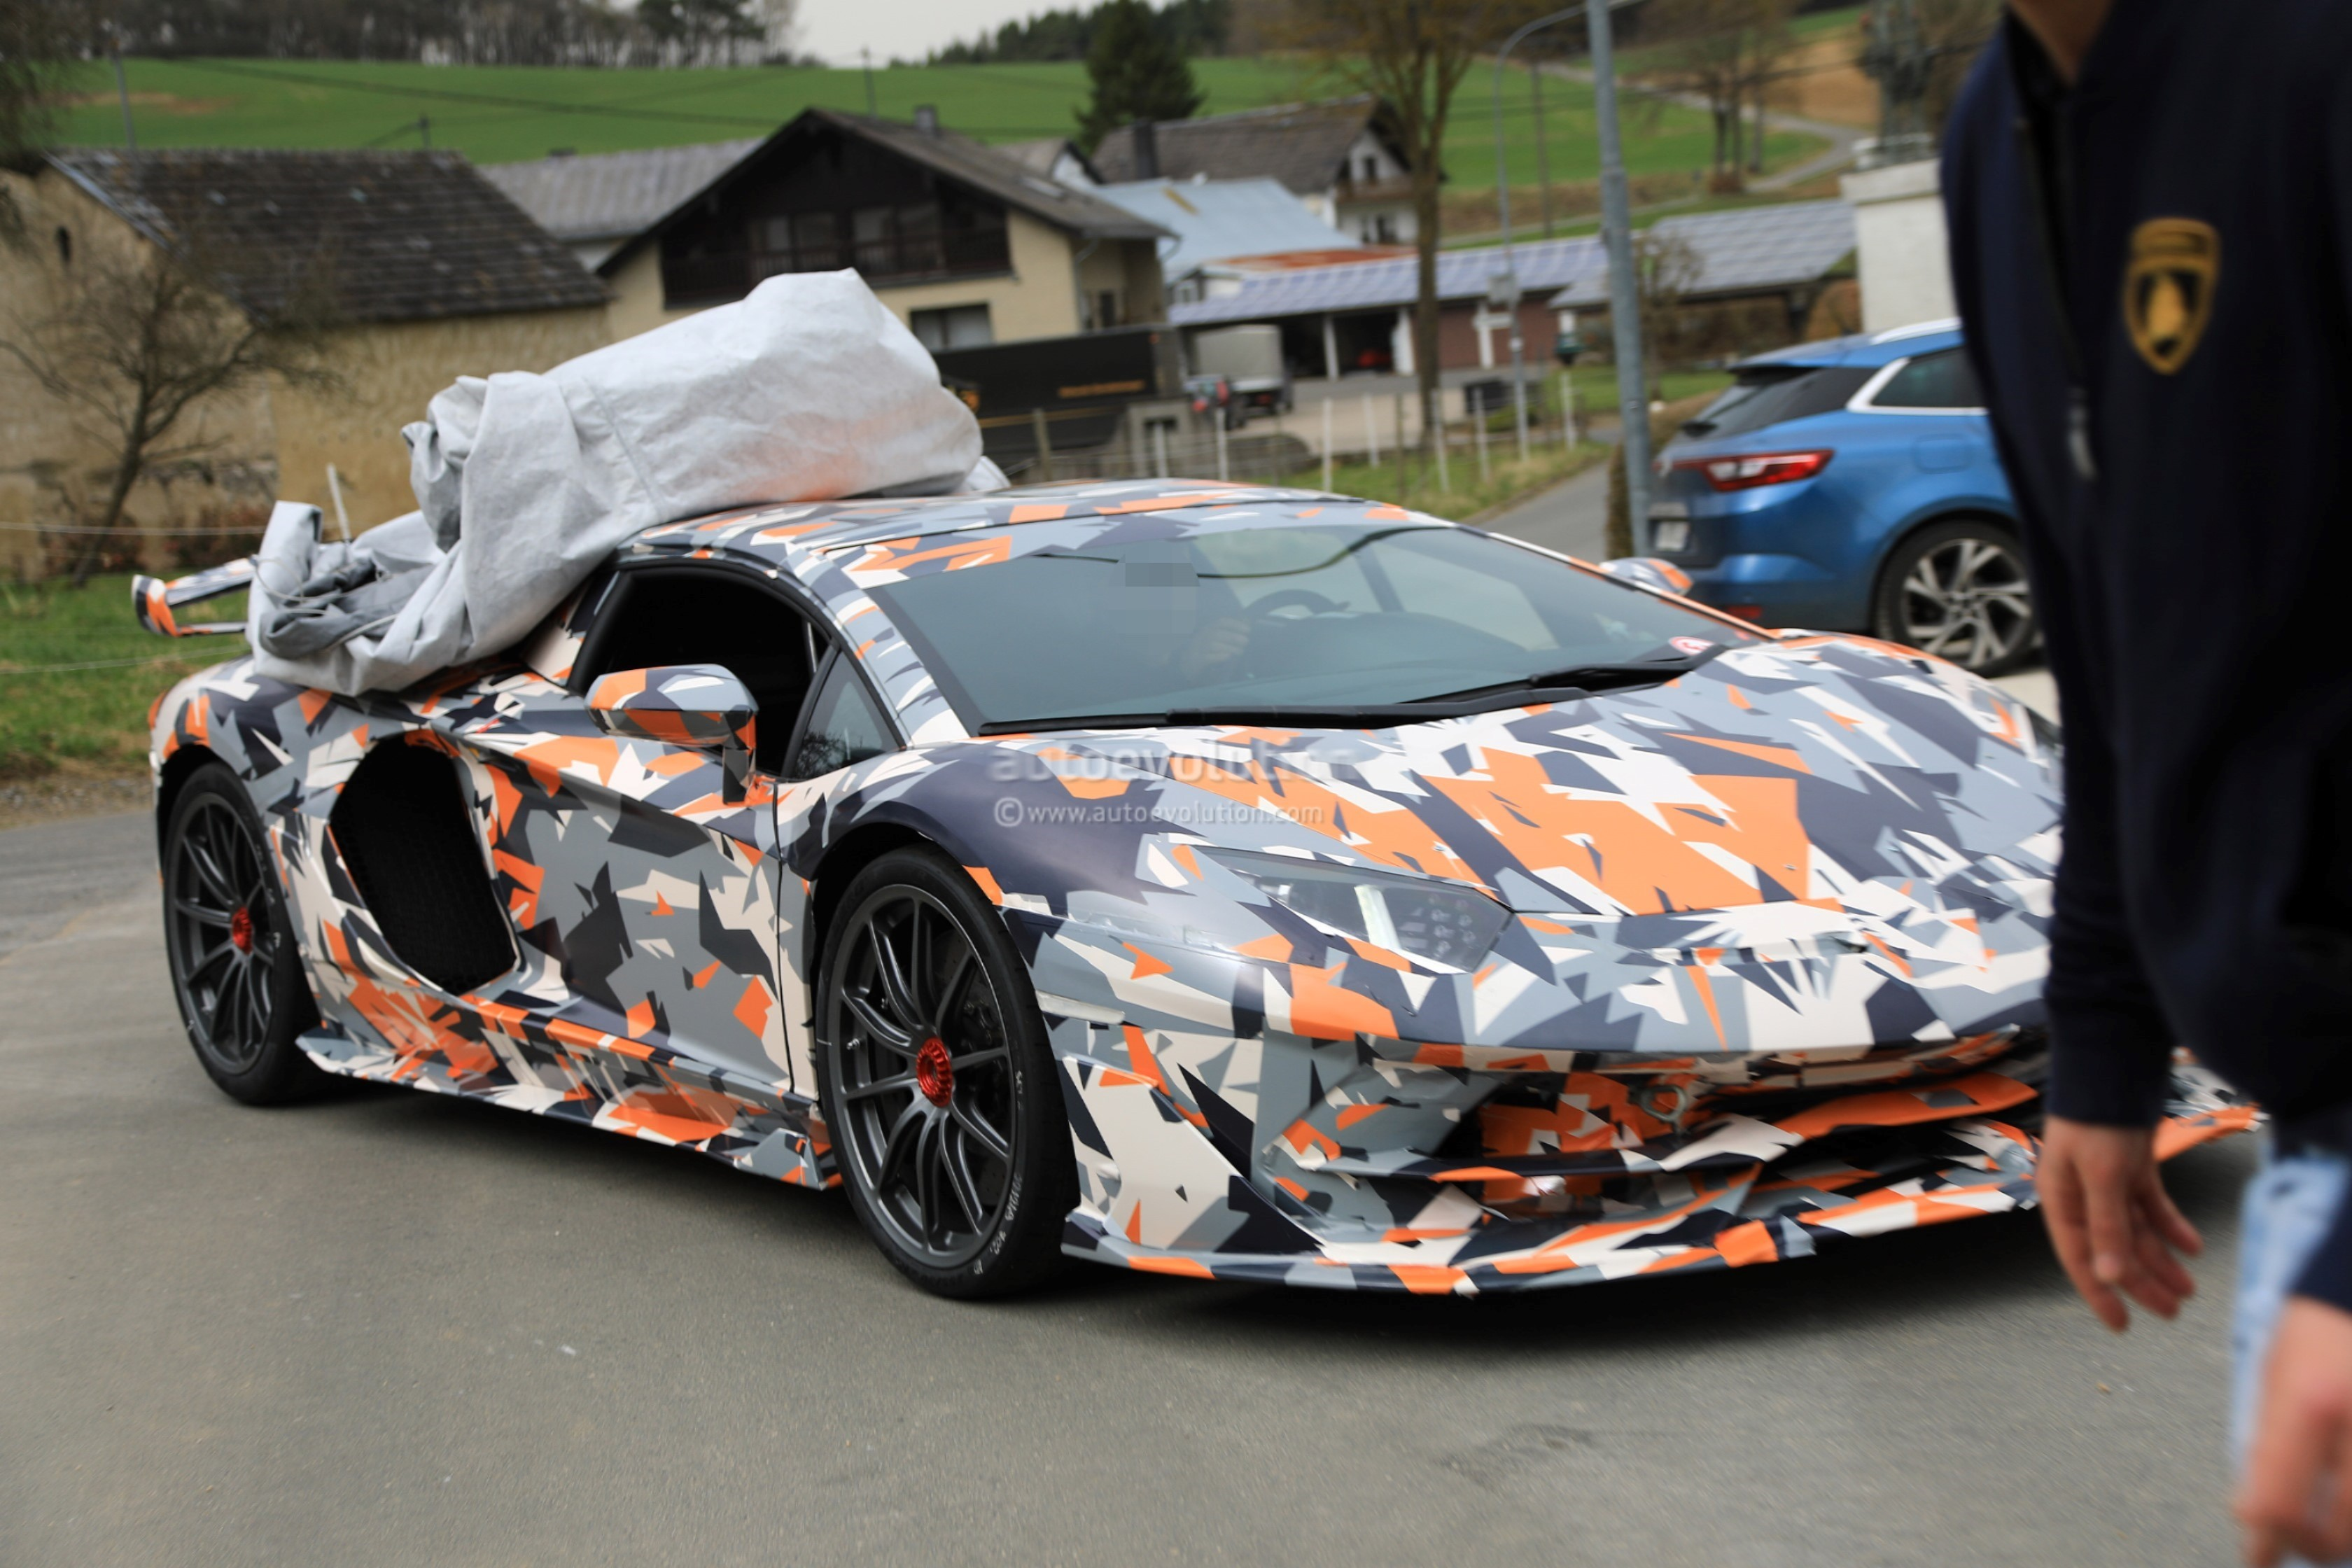 2019 Lamborghini Aventador SVJ Could Be the Nurburgring's ...